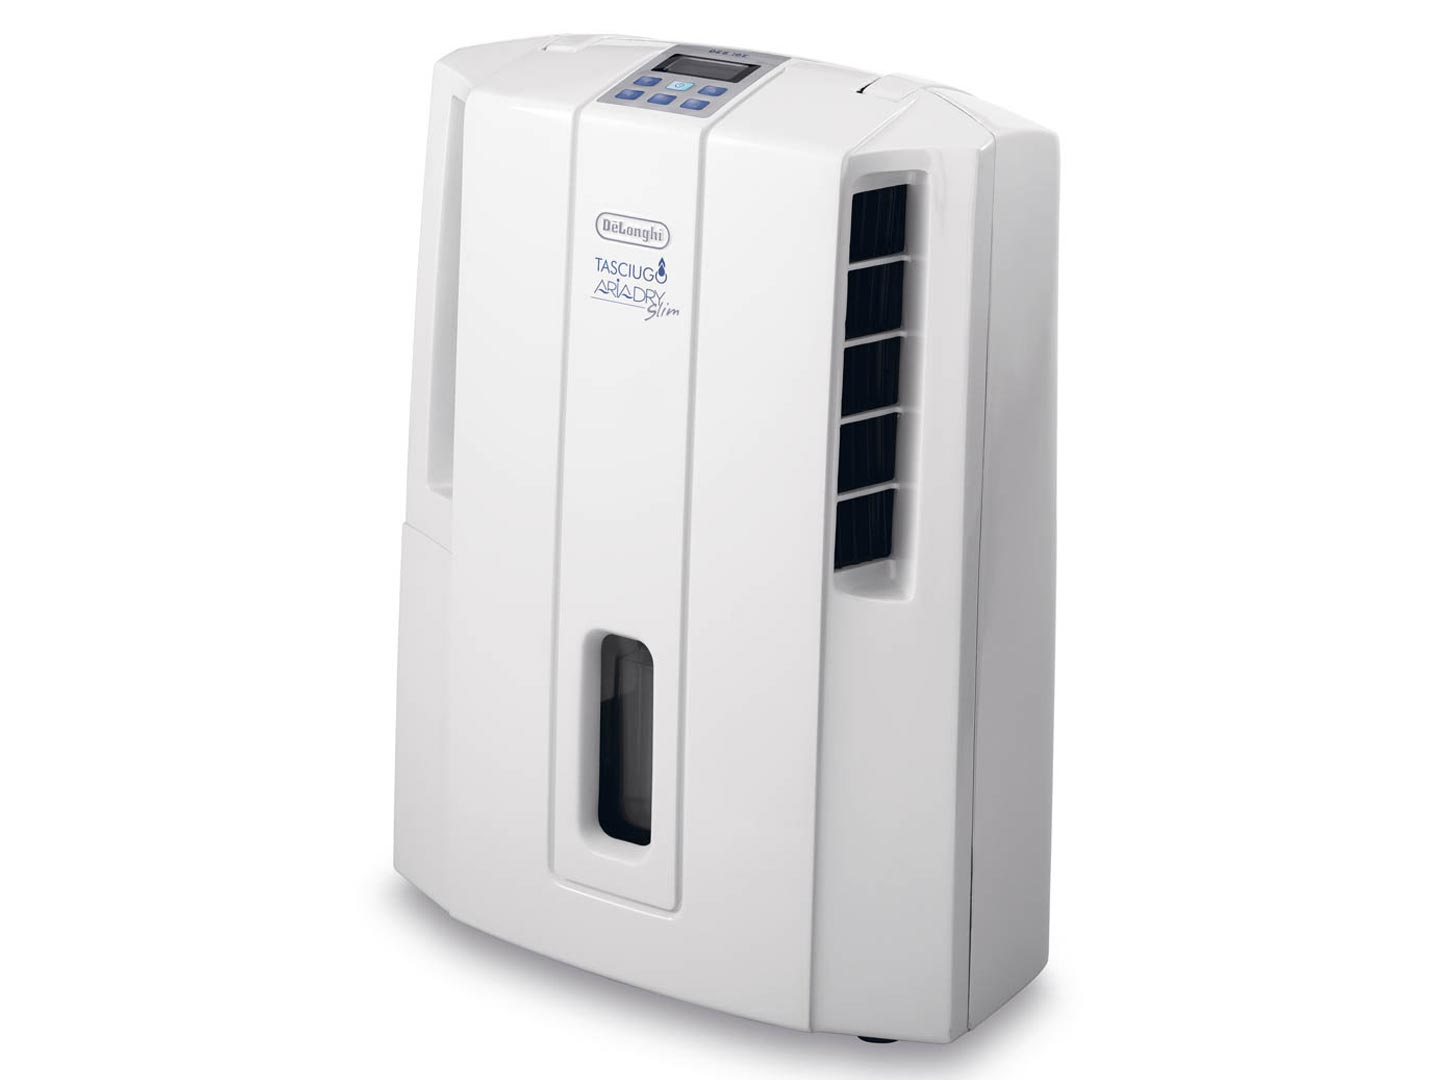 Humidifiers DeLonghi Dehumidifier (R3999!!!) was sold for R501.00 on  #4A5881